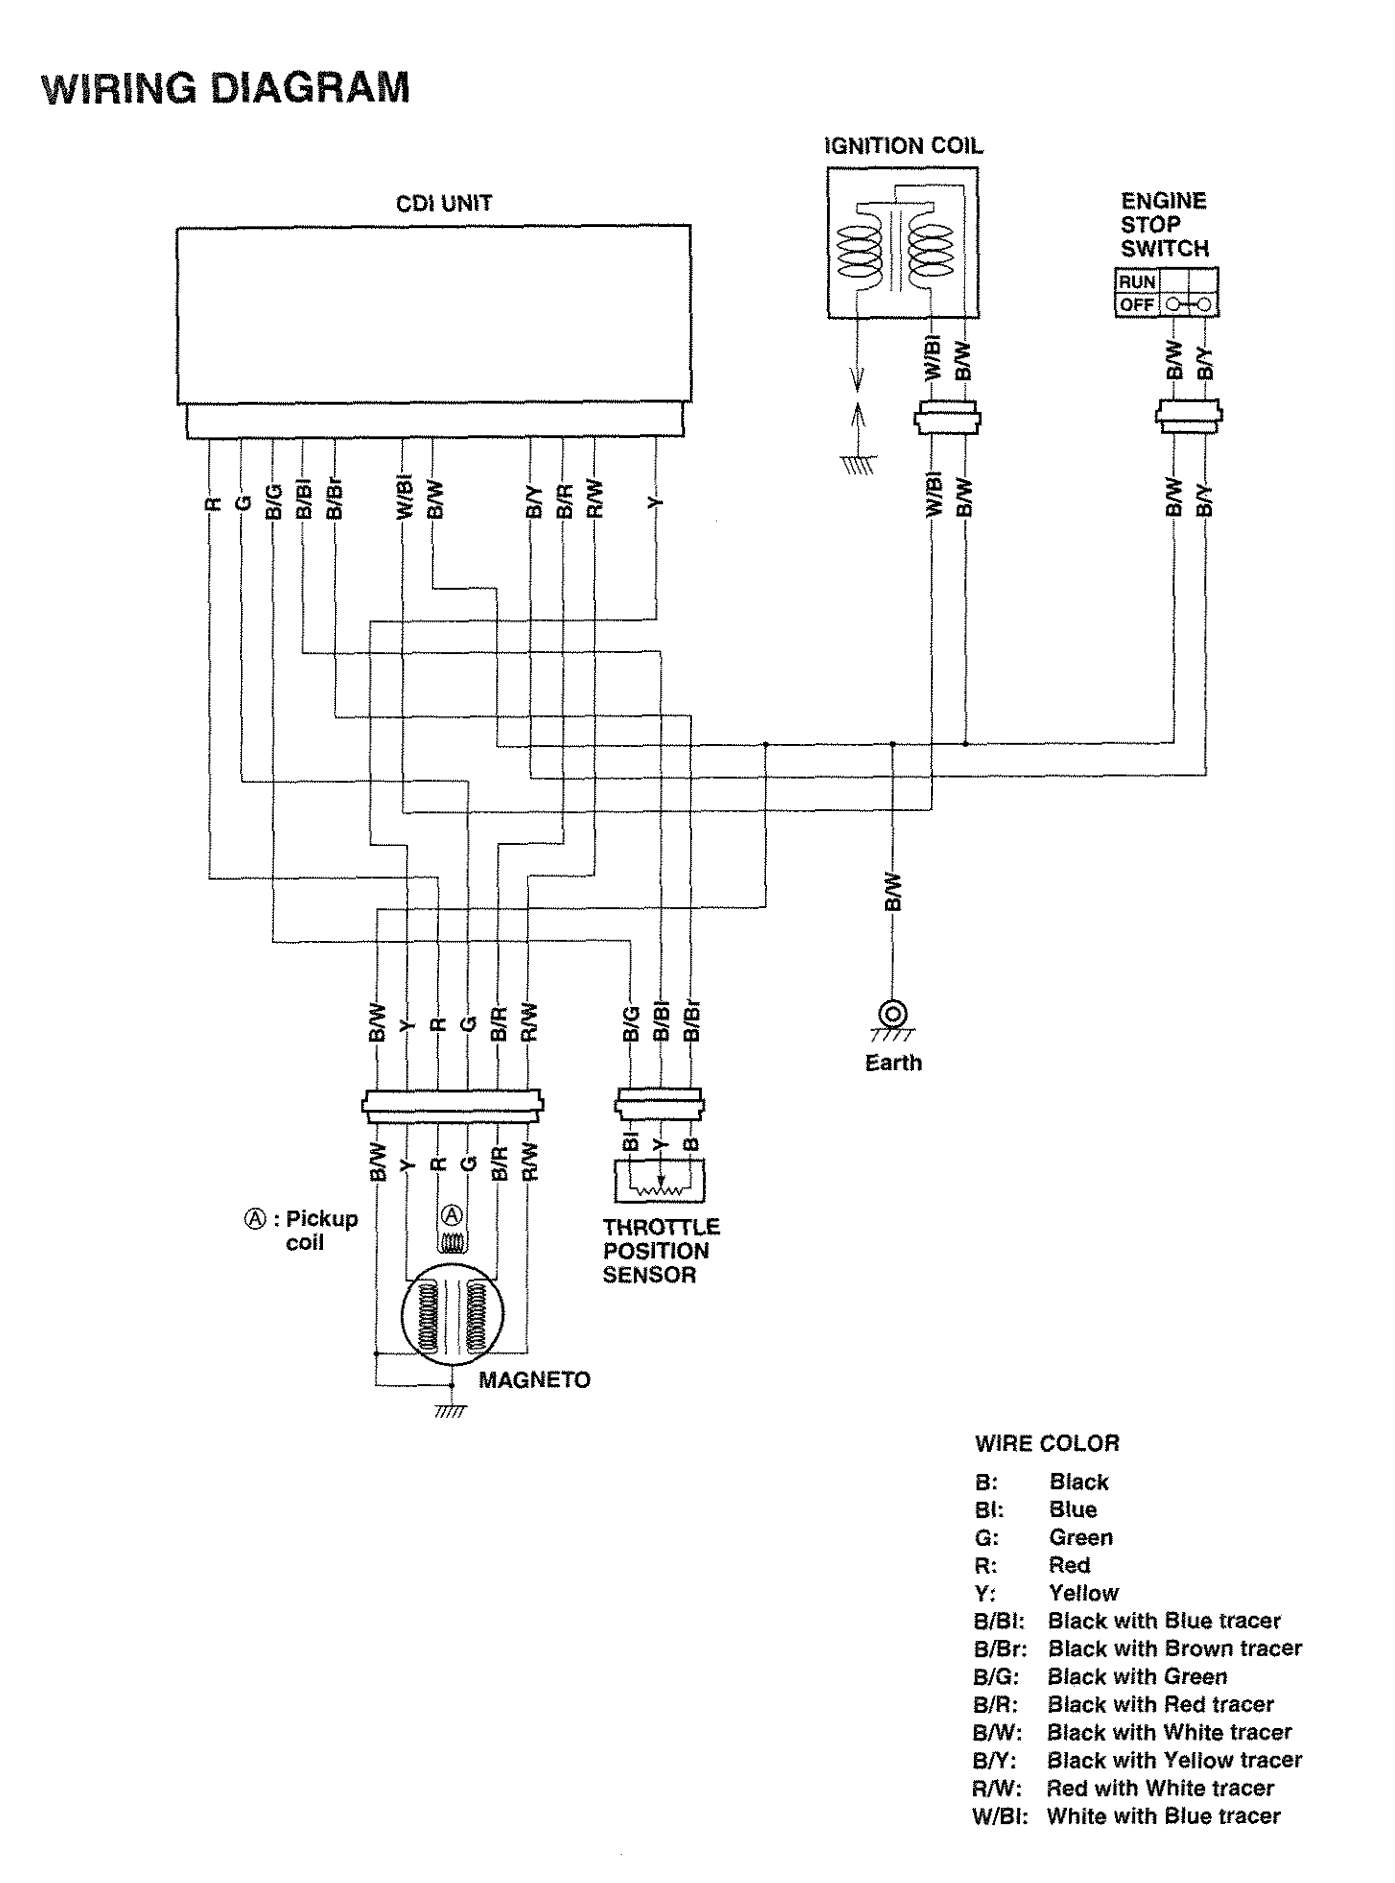 2002 harley sportster wiring diagram battery diagrams davidson ignition systems imageresizertool com